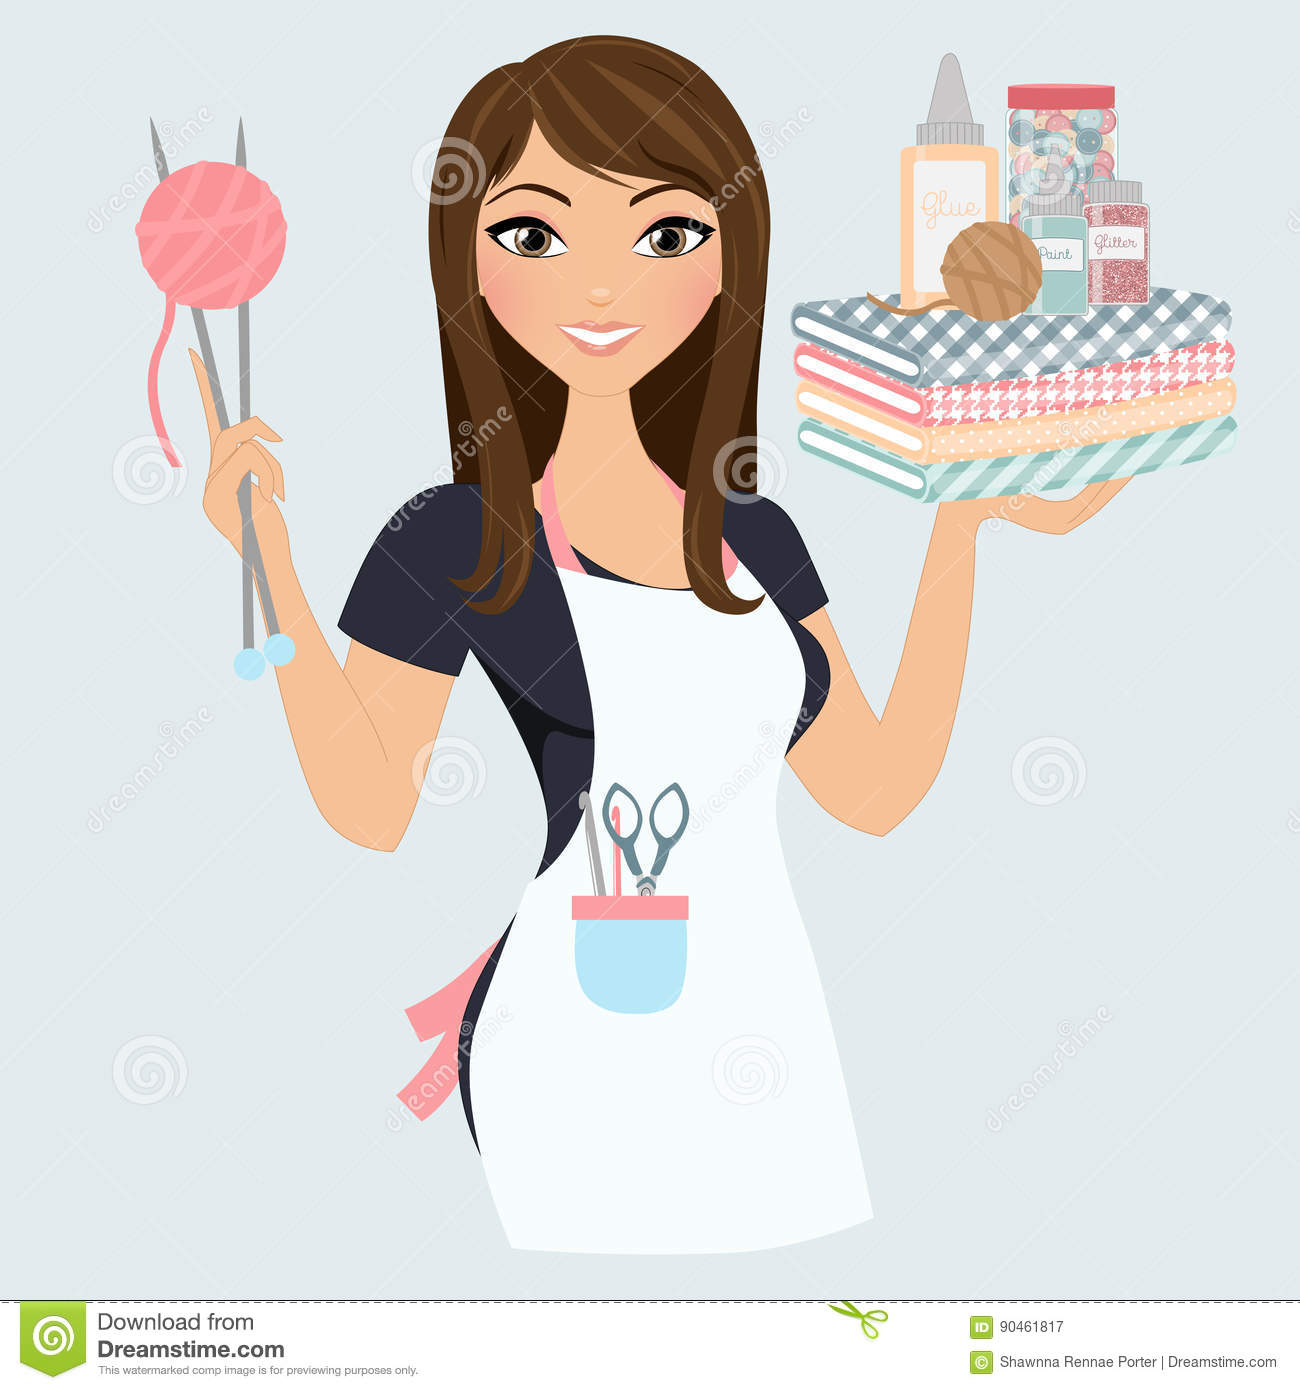 Woman Knitting Clipart : Crafter woman stock image illustration of avatar